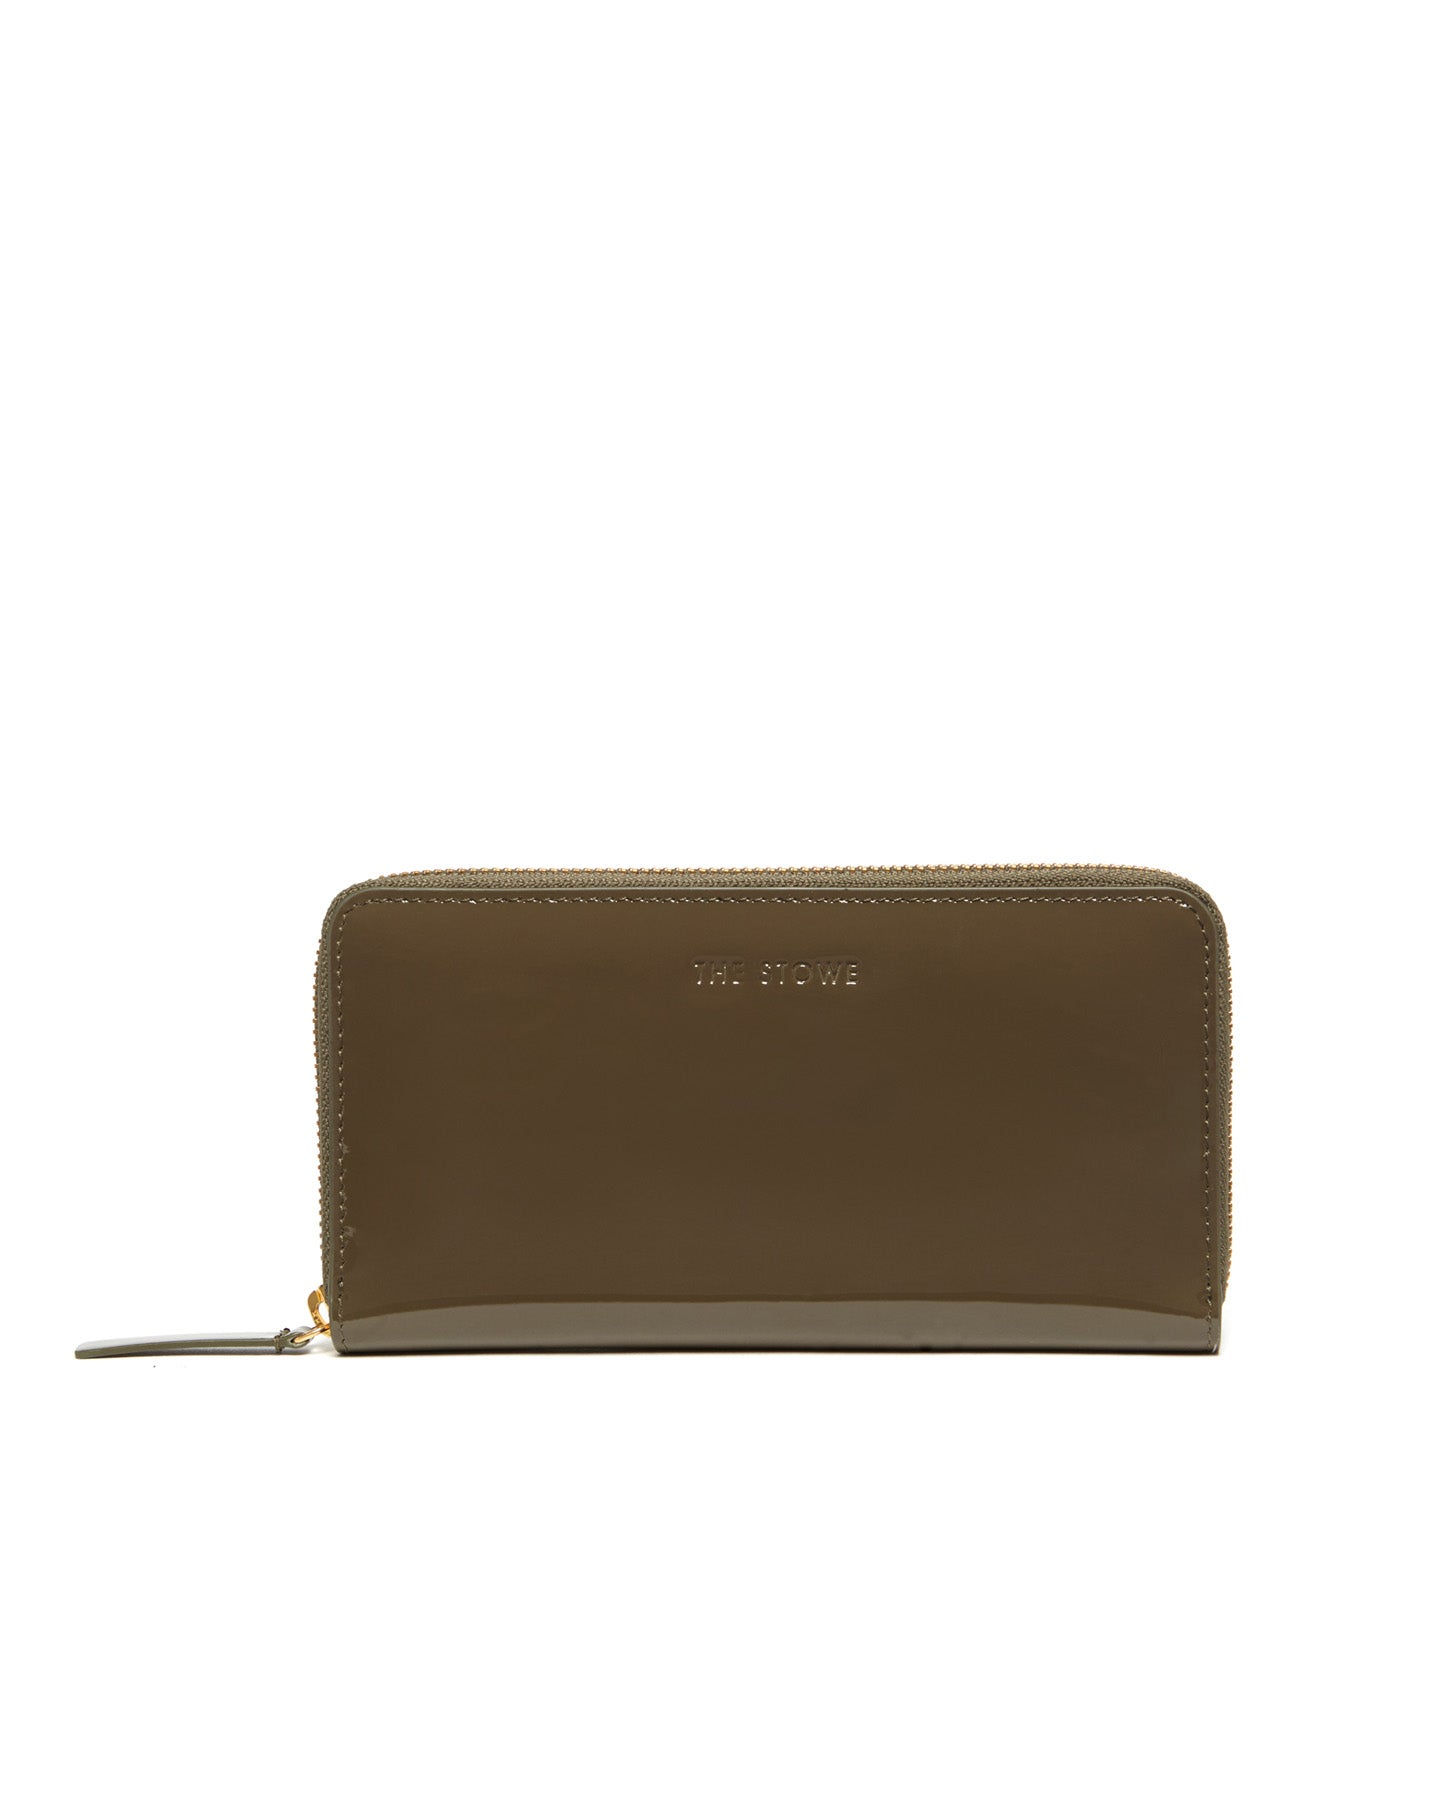 Patent Zip Wallet in Army